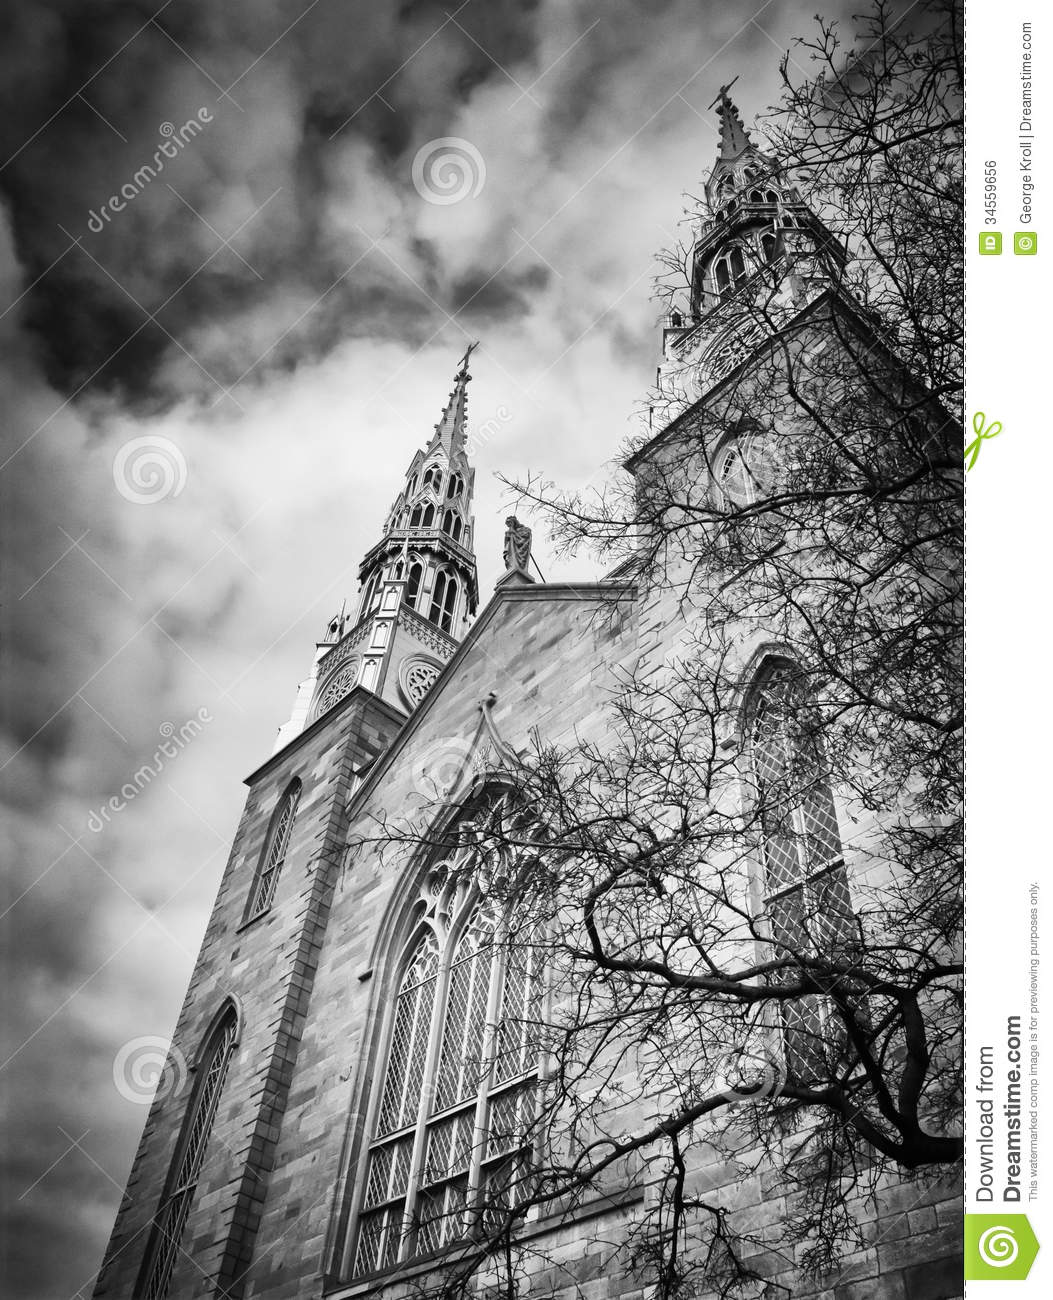 Dark, Imposing And Ominous Church Image Royalty Free Stock Image.